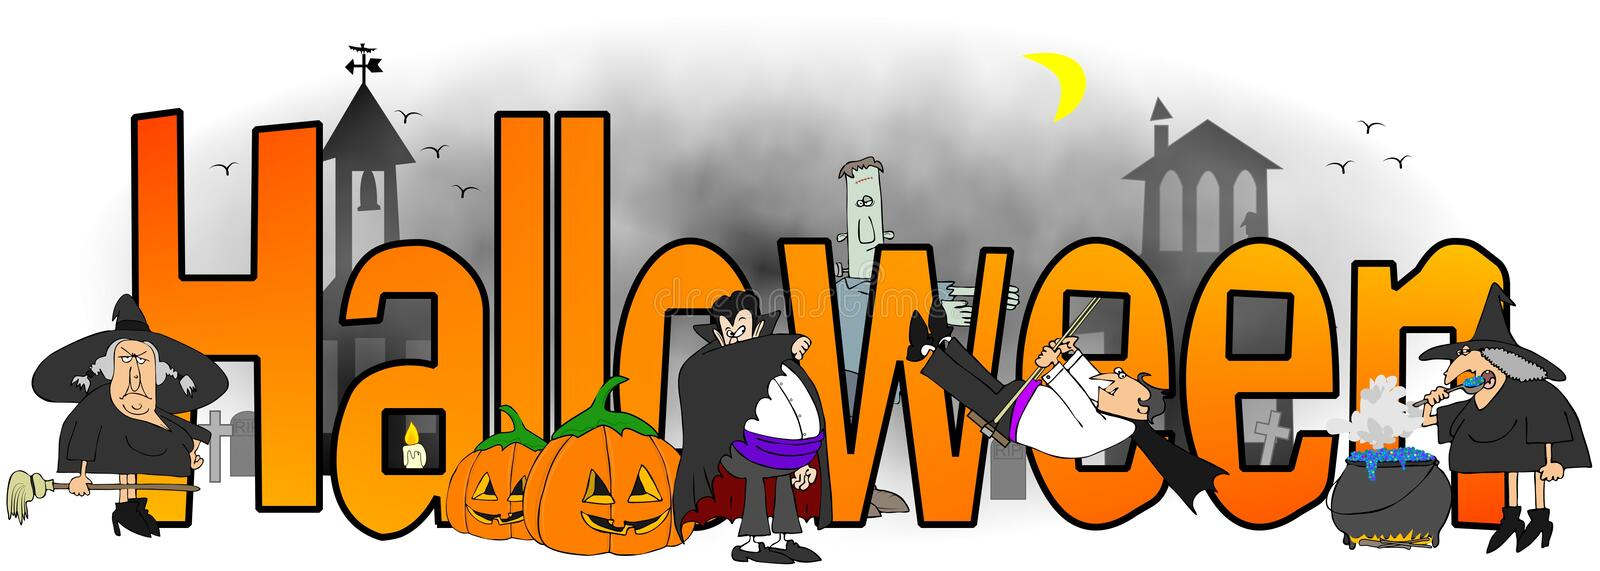 The word Halloween surrounded by witches, vampires and monsters stock illustration